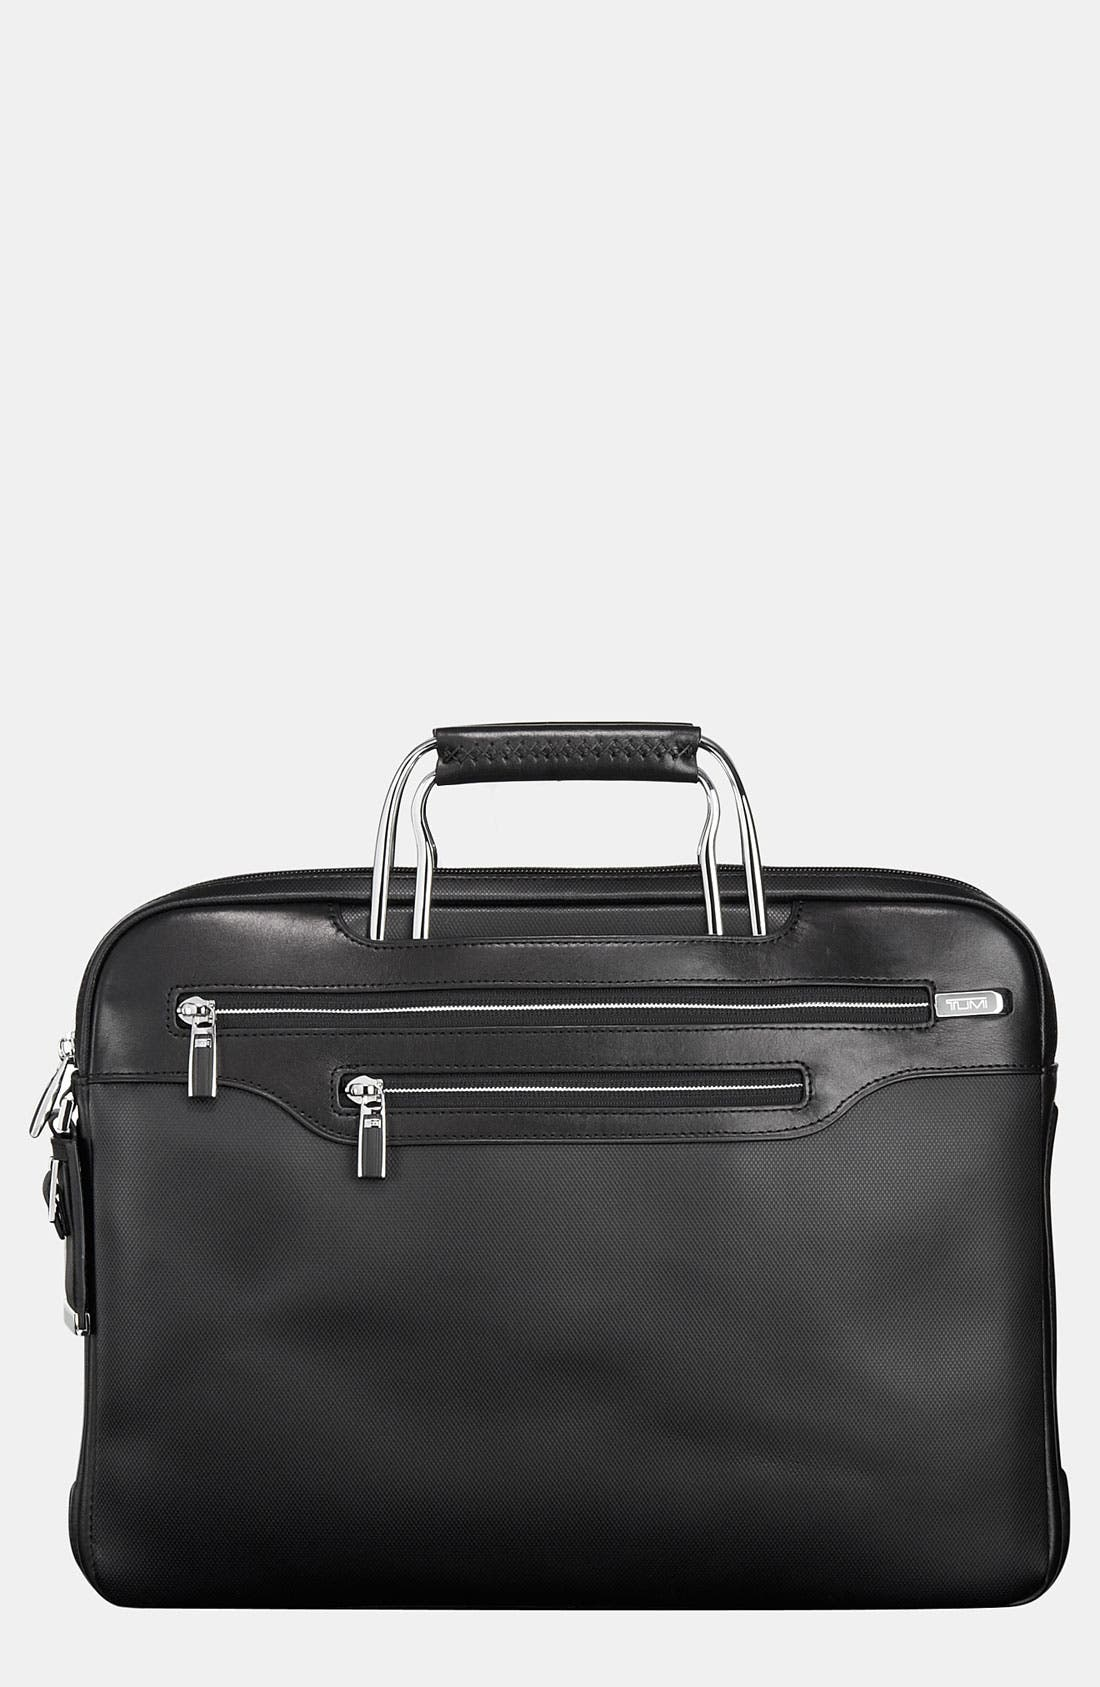 Main Image - Tumi 'Arrive - Tegel' Slim Leather Portfolio